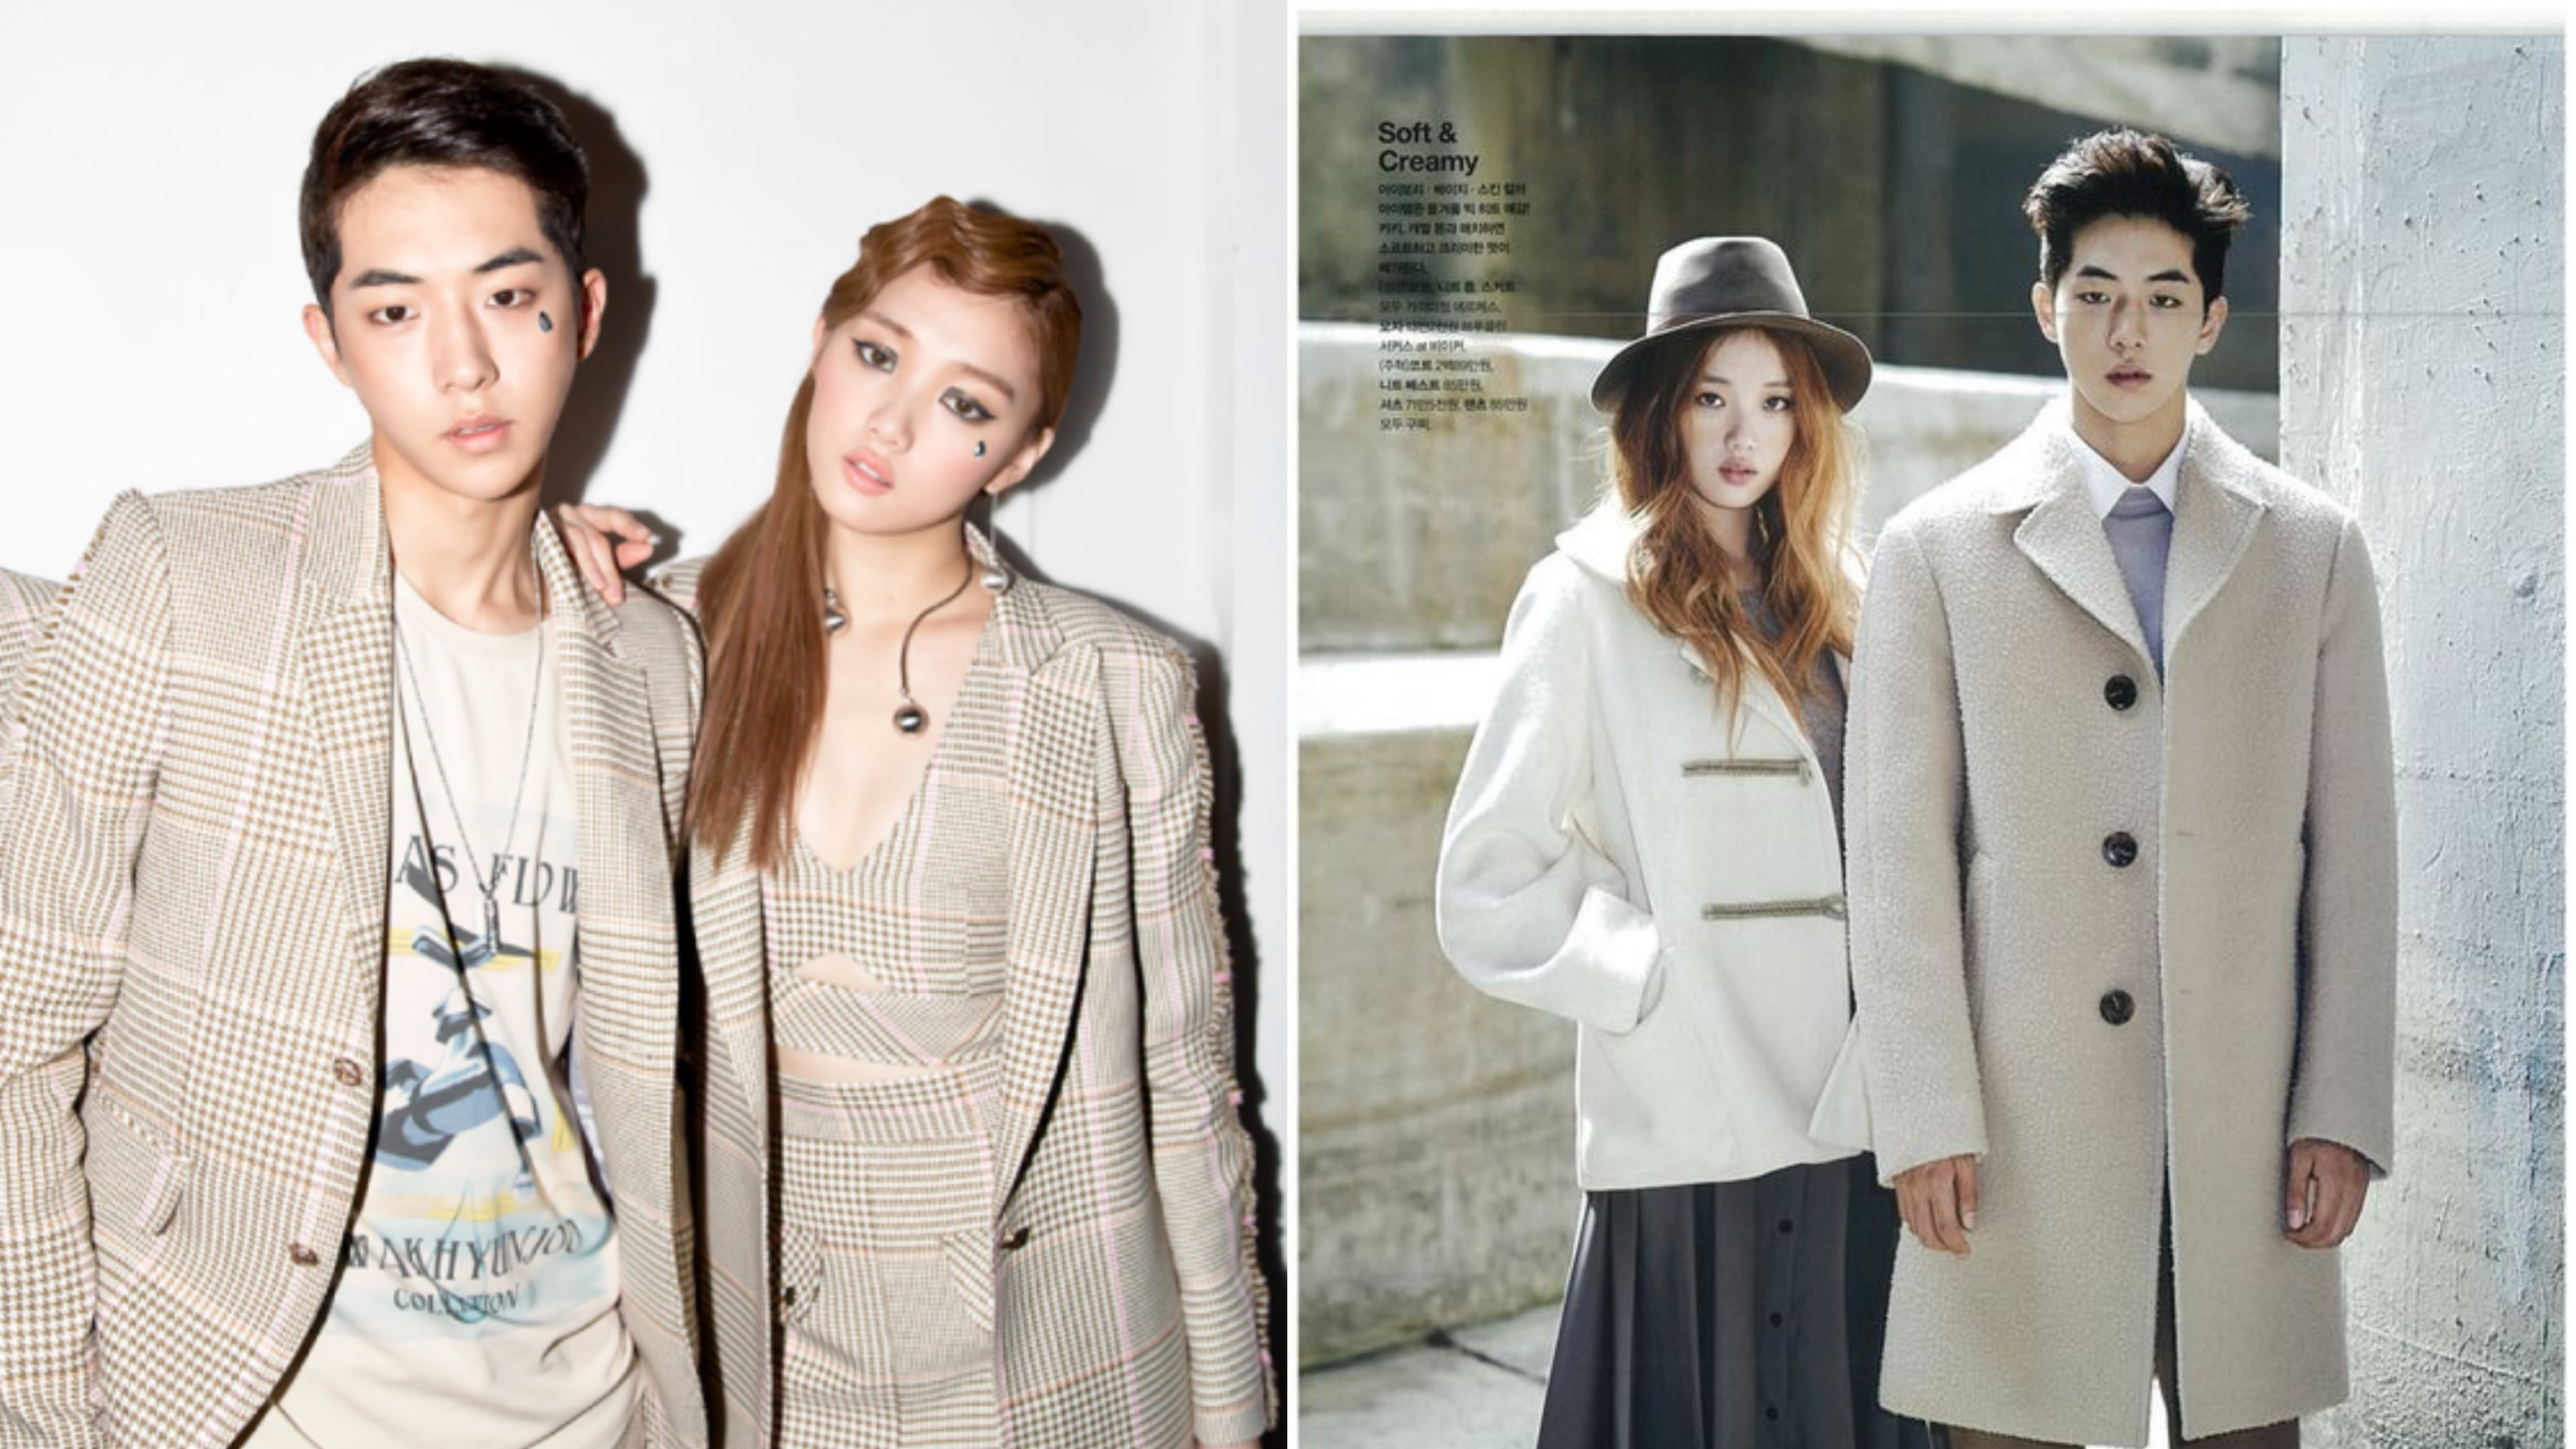 From Co-Worker To Couple: Lee Sung Kyung and Nam Joo Hyuk's Best Modeling Moments